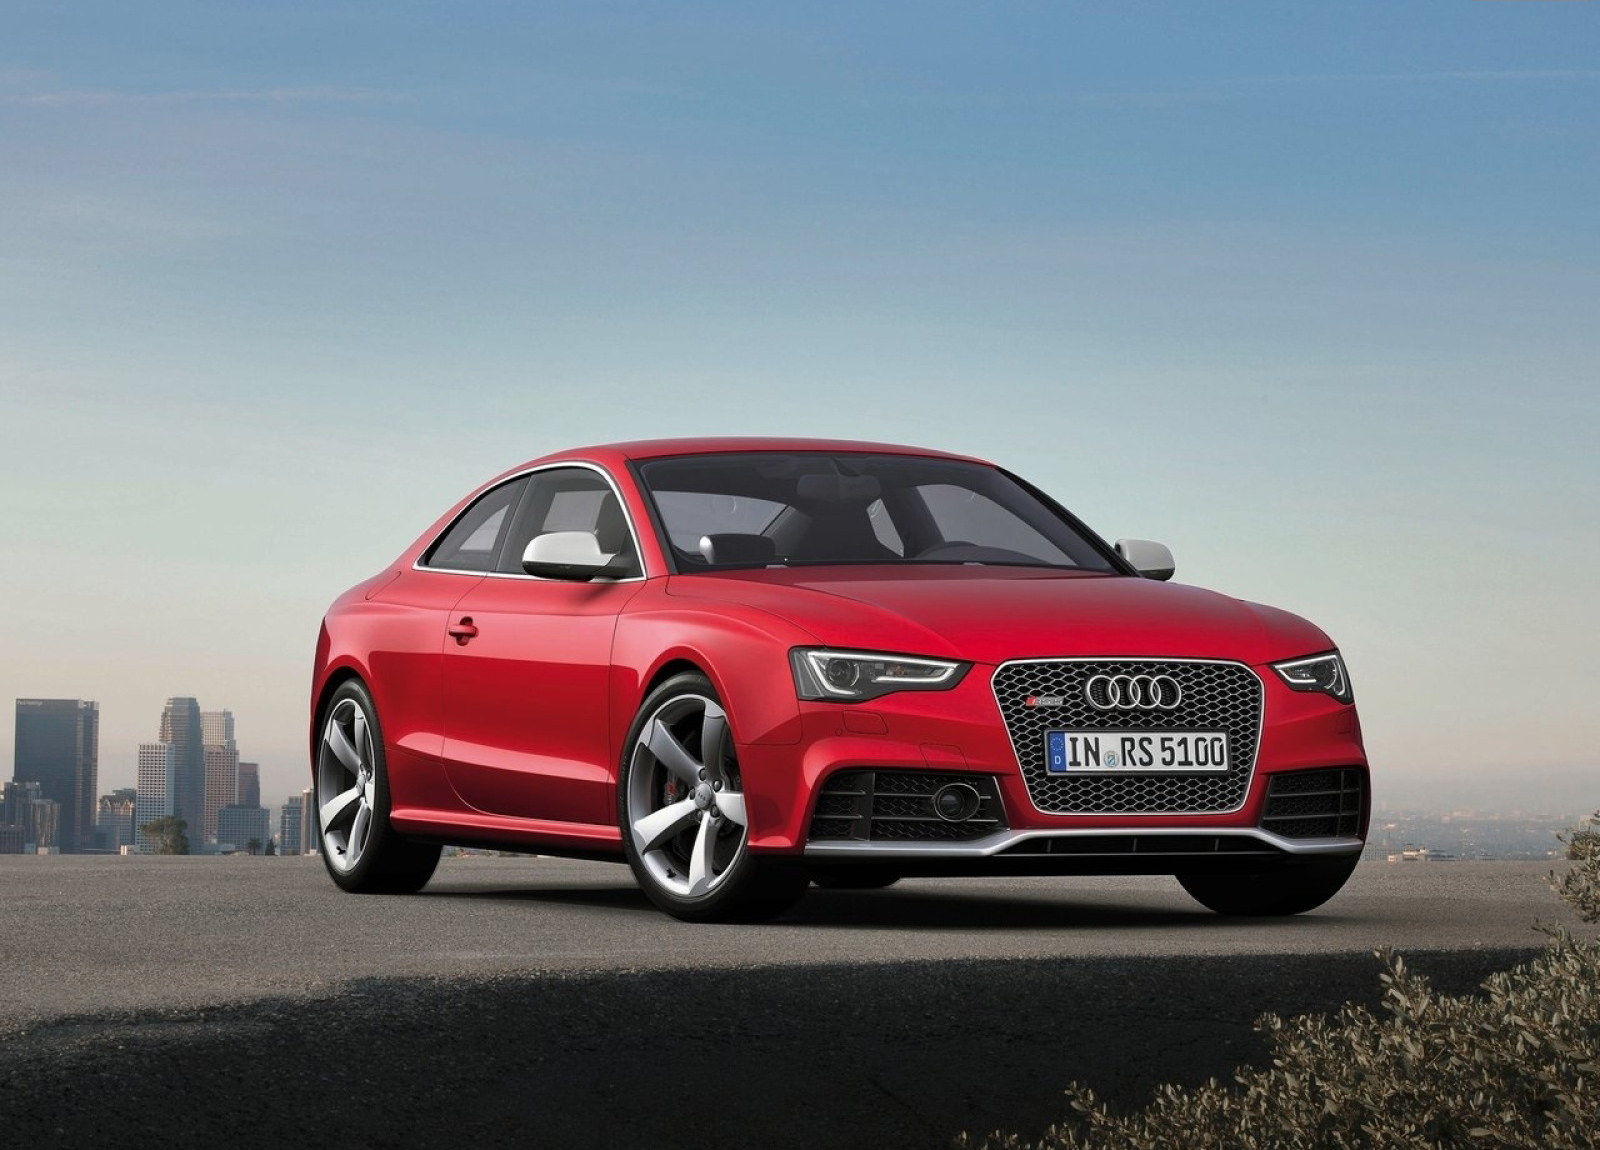 Audi RS5 HD Wallpapers | The World of Audi